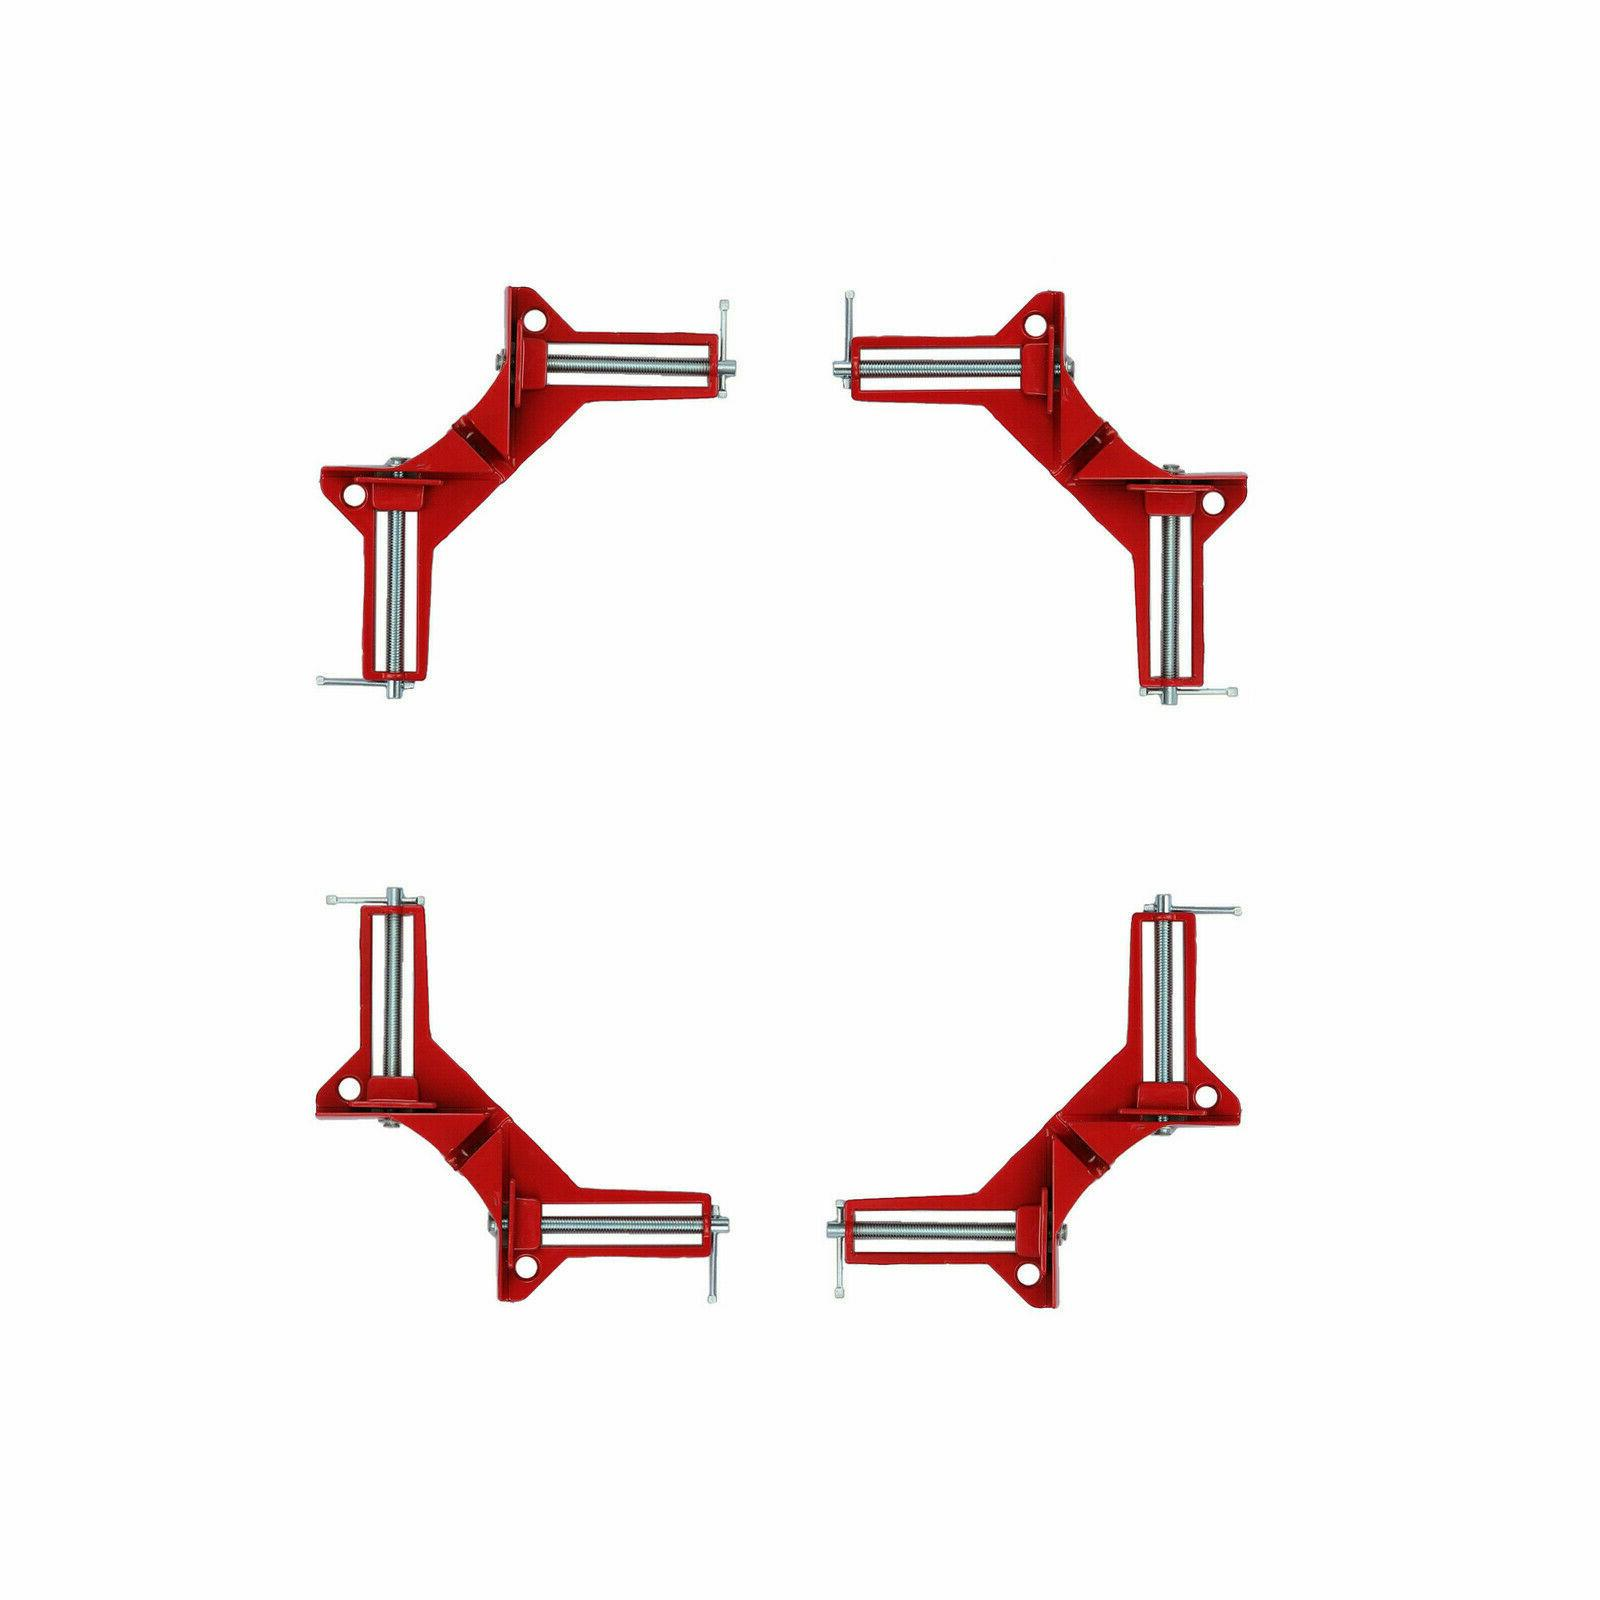 4x 90° Angle Picture Clamp Holder Kit